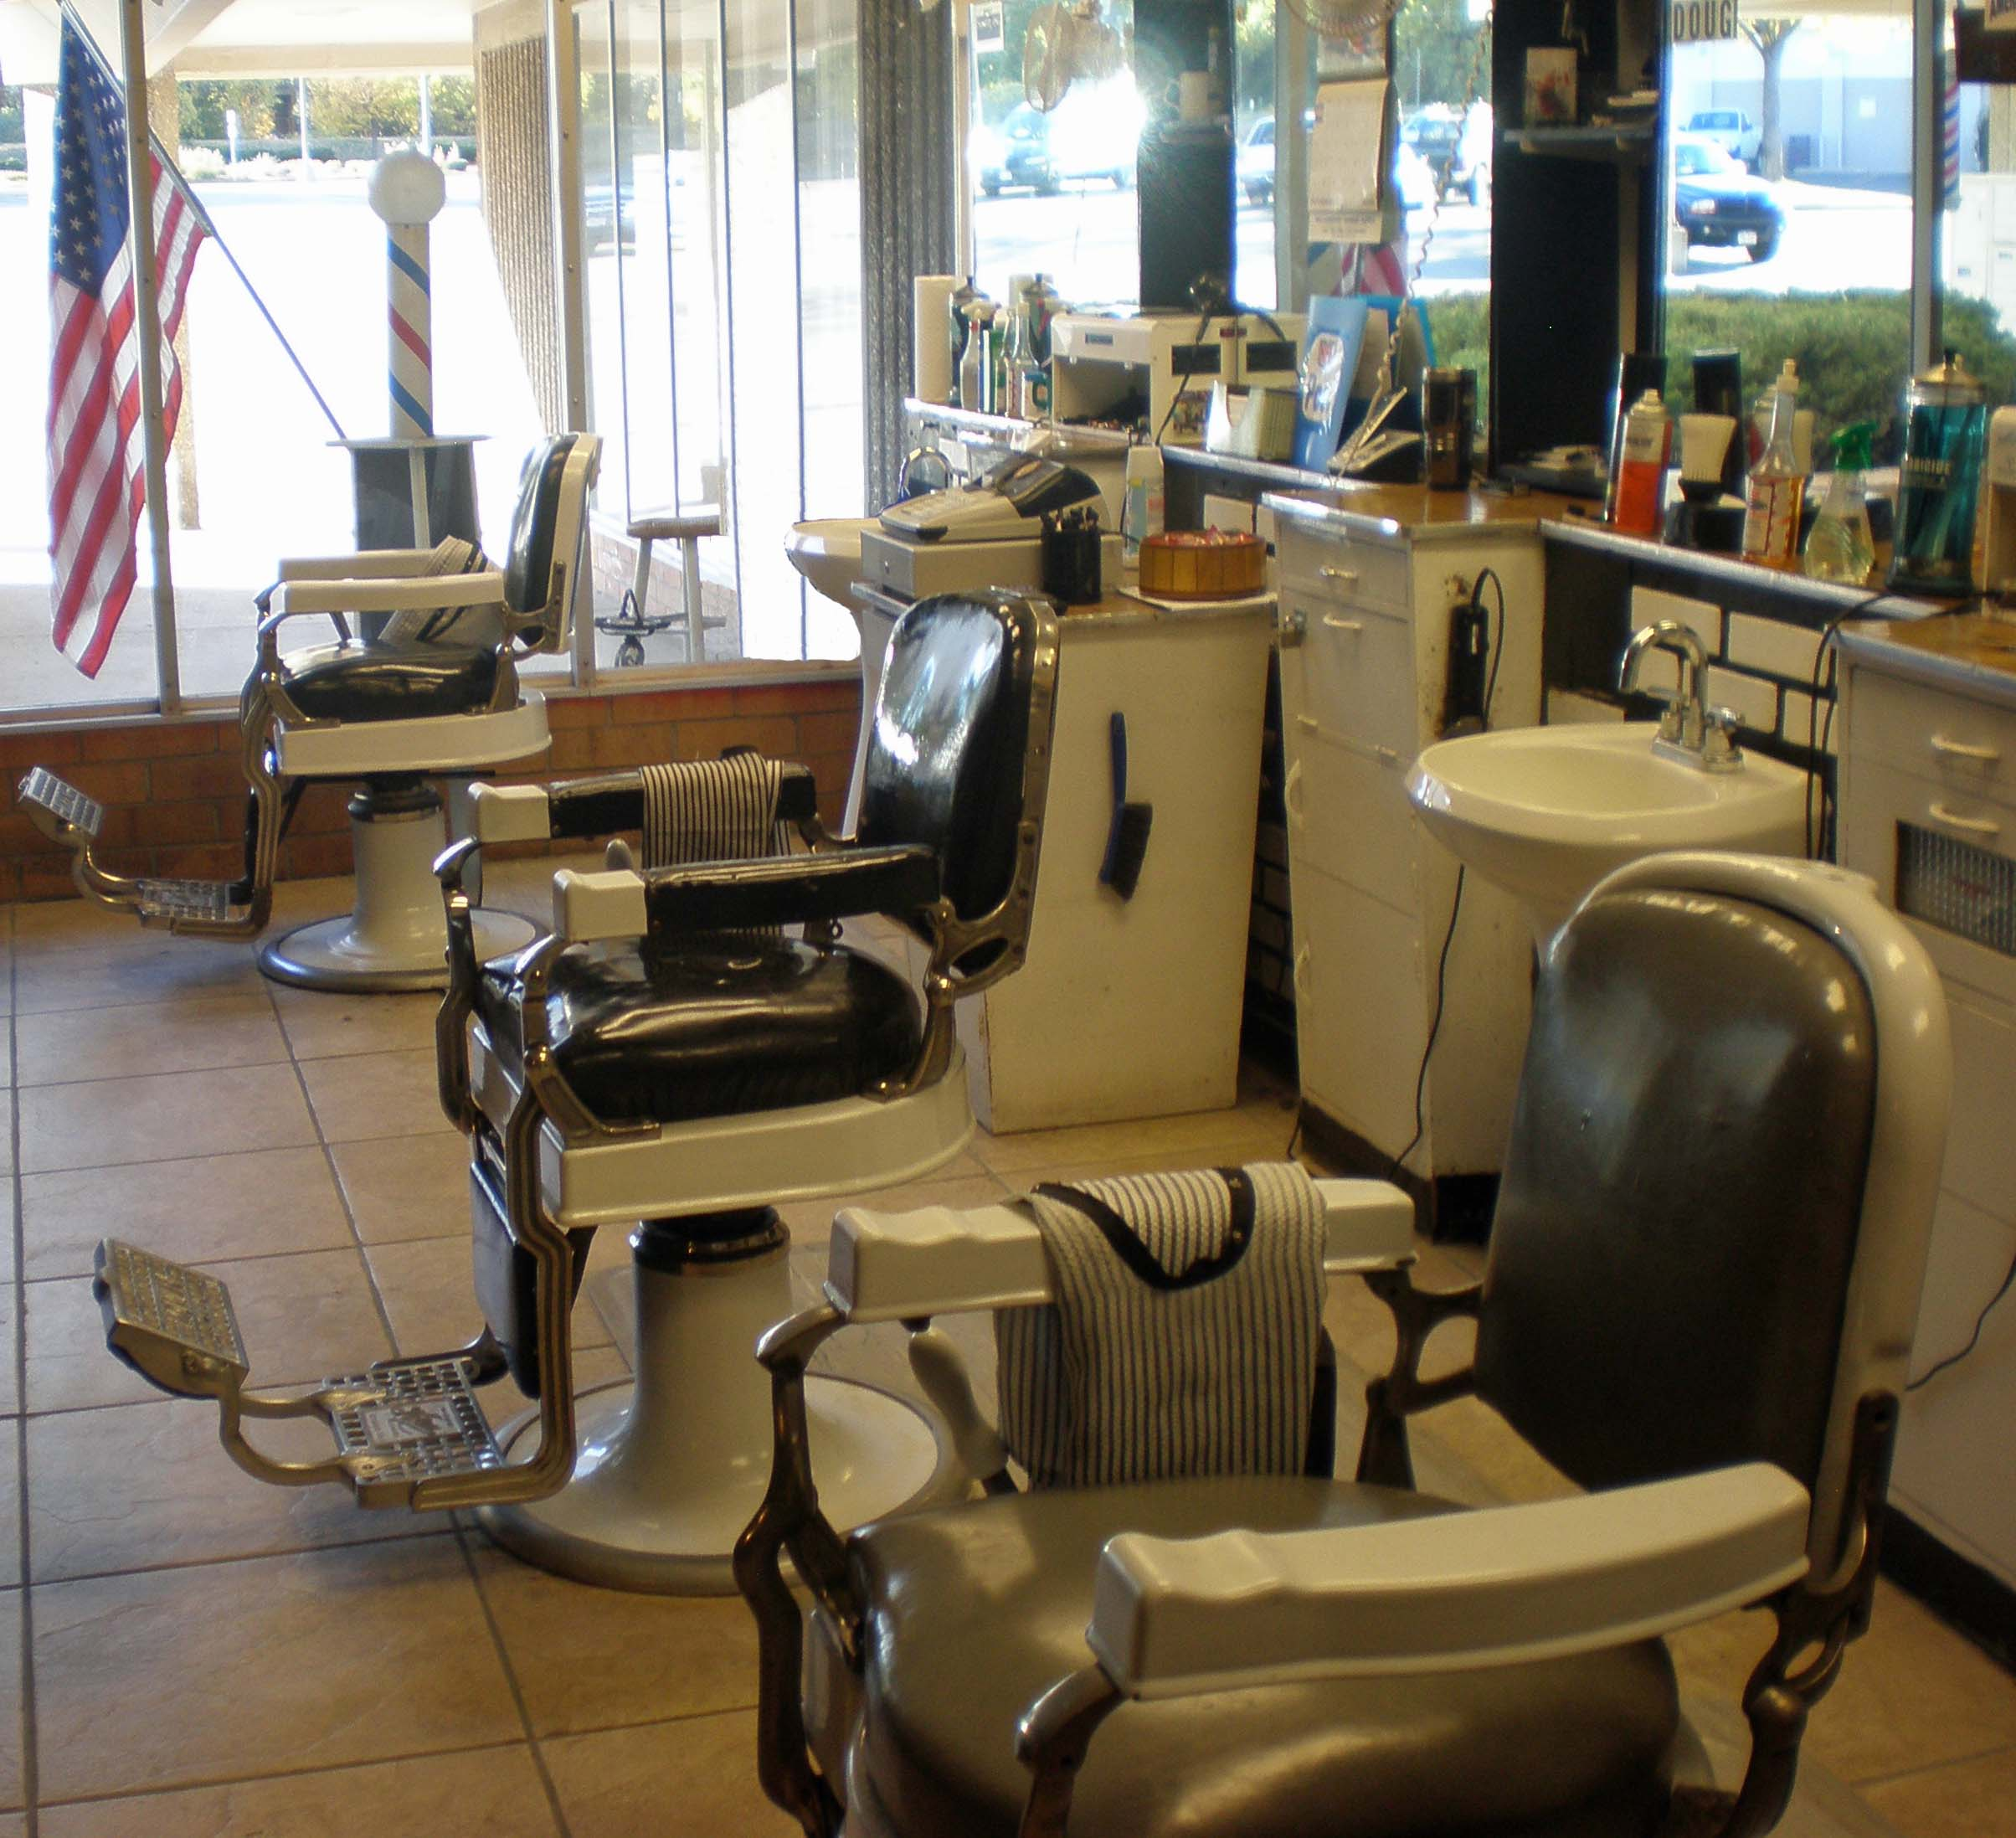 Koken Barber Chairs The Barber Den